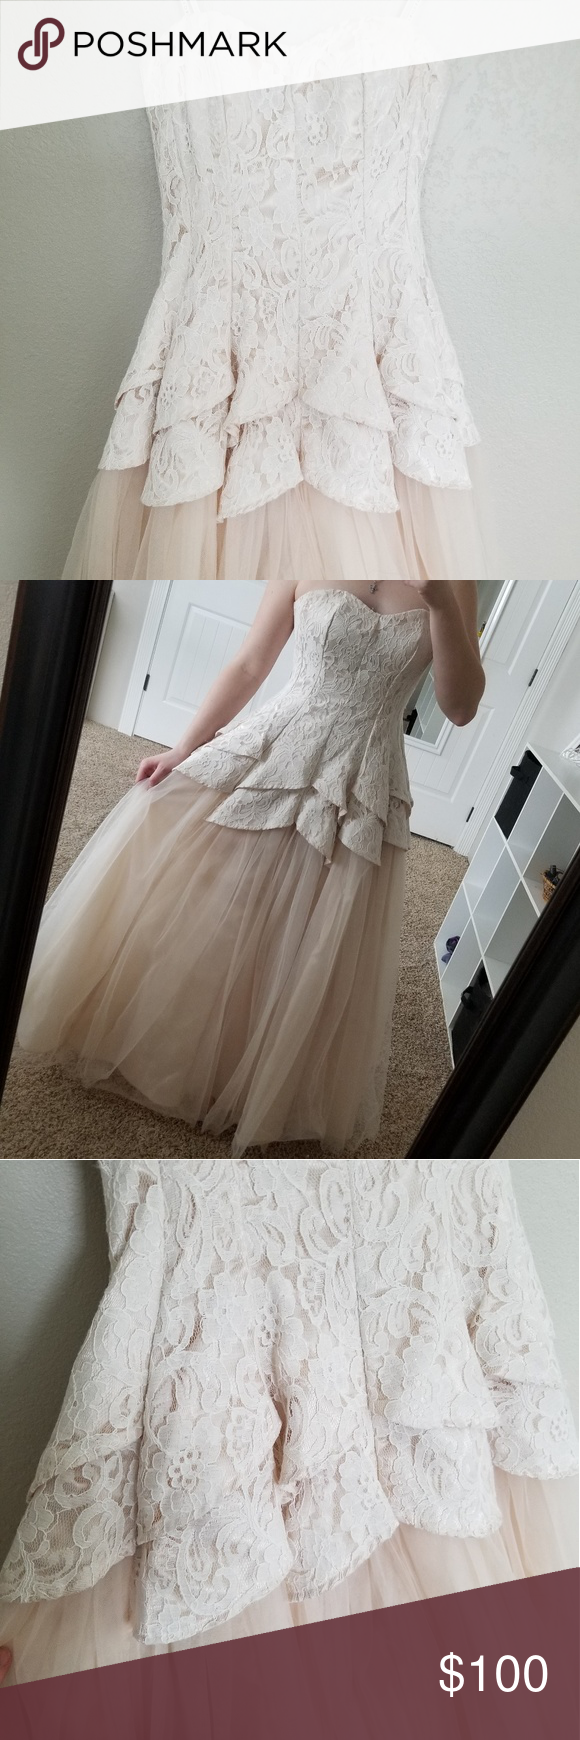 Prom dress Worn once. Beautiful lace Masquerade ball gown. No damage.  Perfect condition Masquerade Dresses Prom #masqueradeballgowns Prom dress Worn once. Beautiful lace Masquerade ball gown. No damage.  Perfect condition Masquerade Dresses Prom #masqueradeballgowns